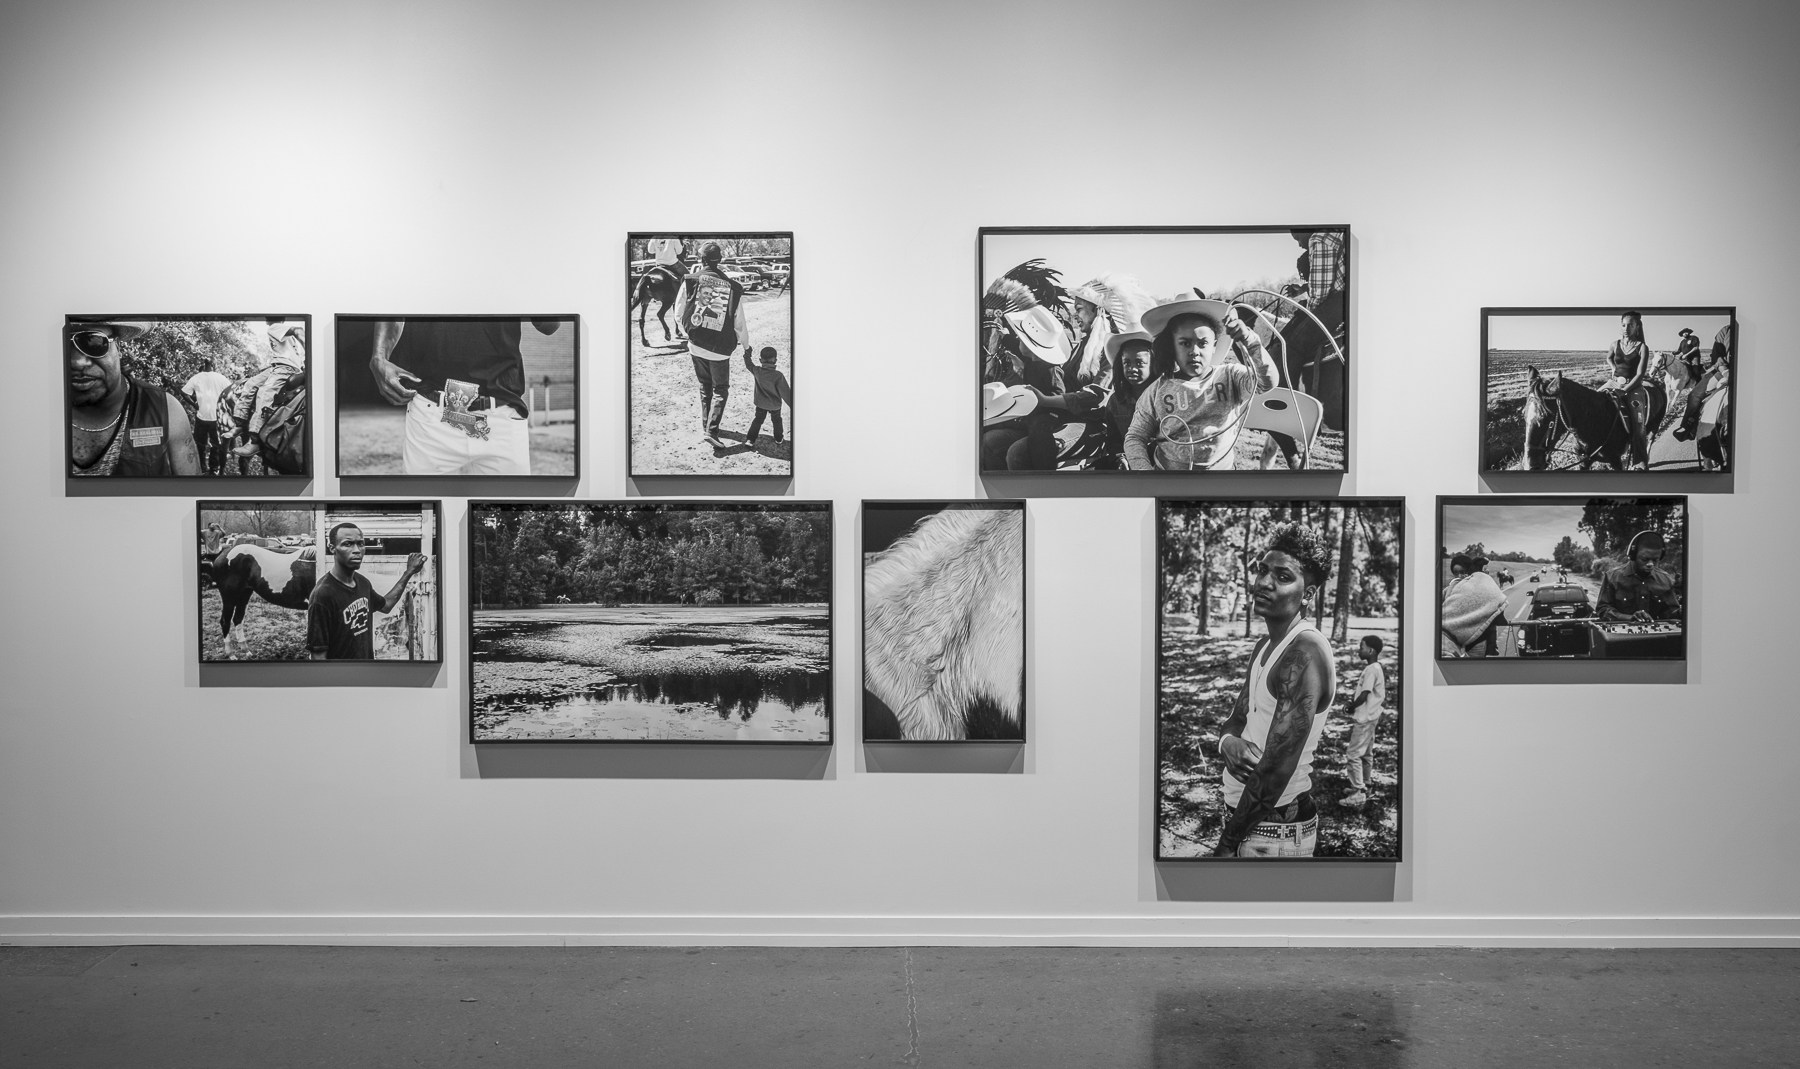 Jeremiah Ariaz, Louisiana Trail Riders, installation view